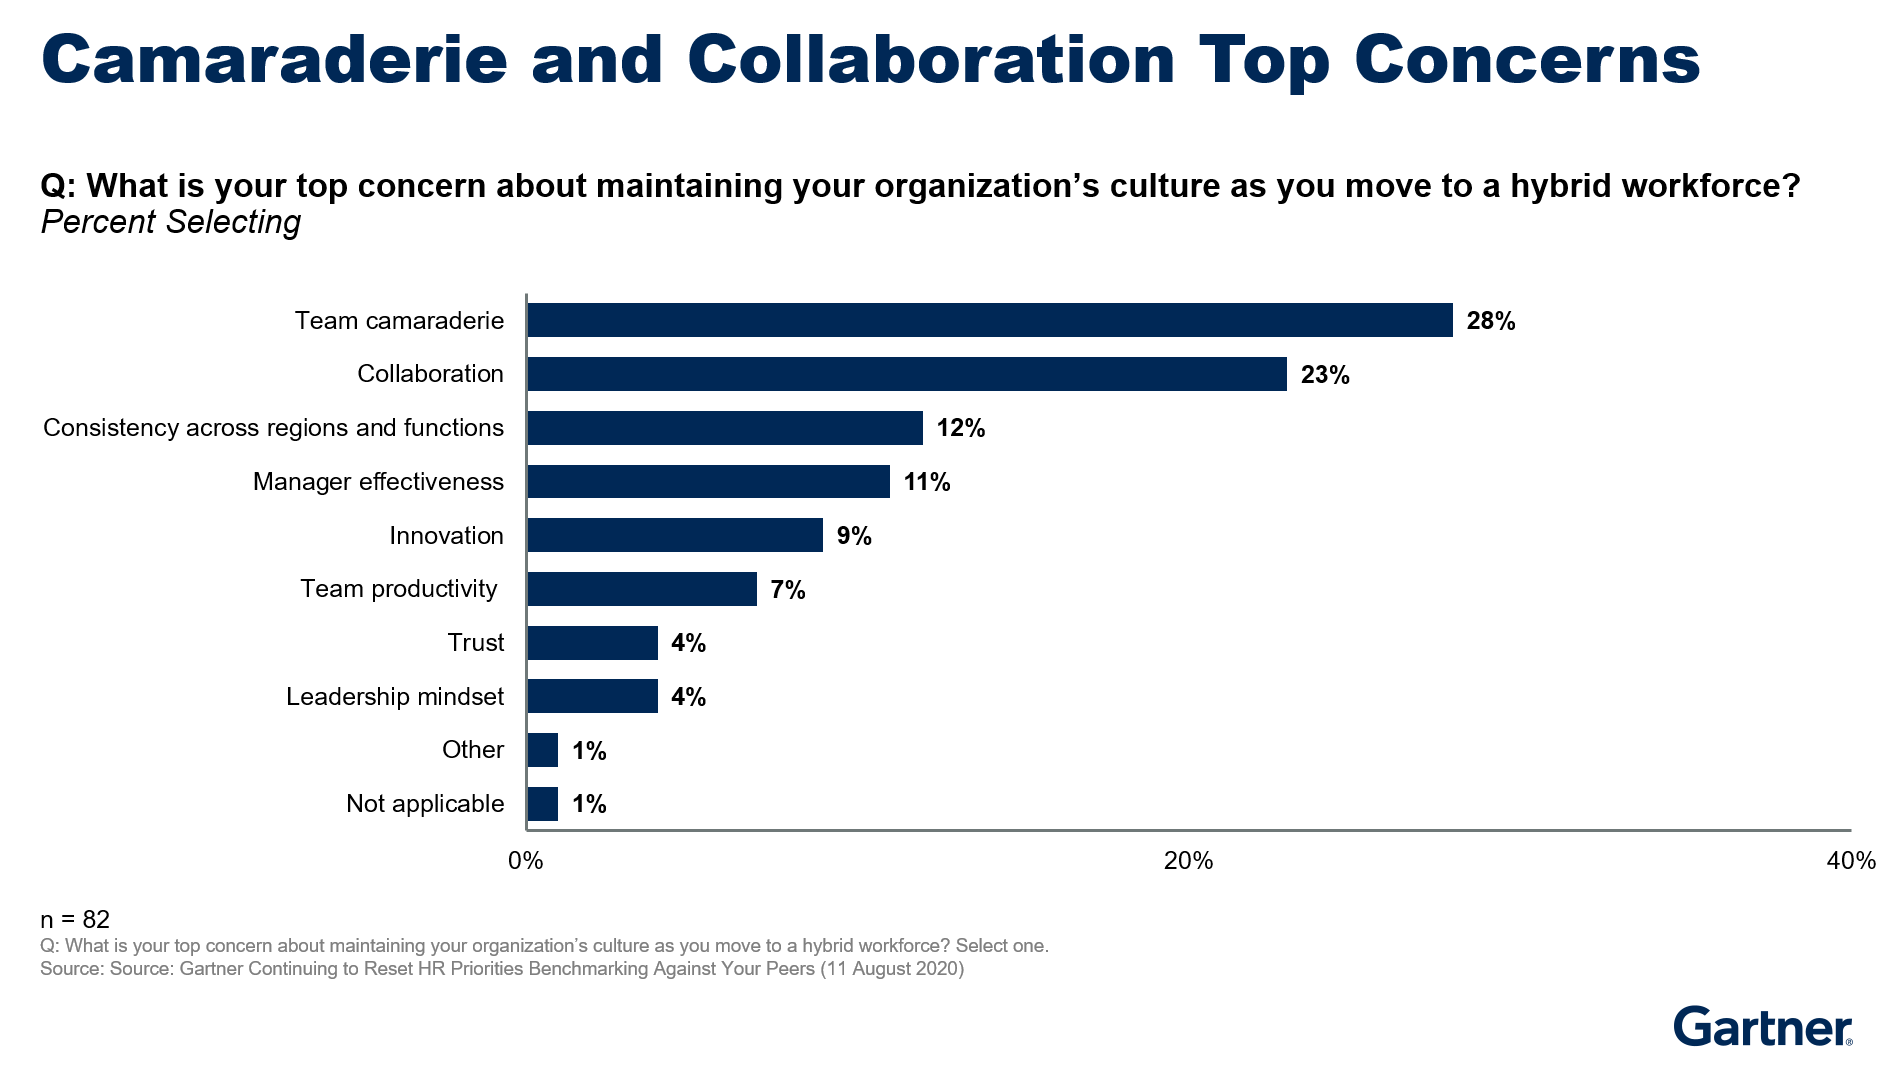 Figure 4. Camaraderie and Collaboration Top Concerns